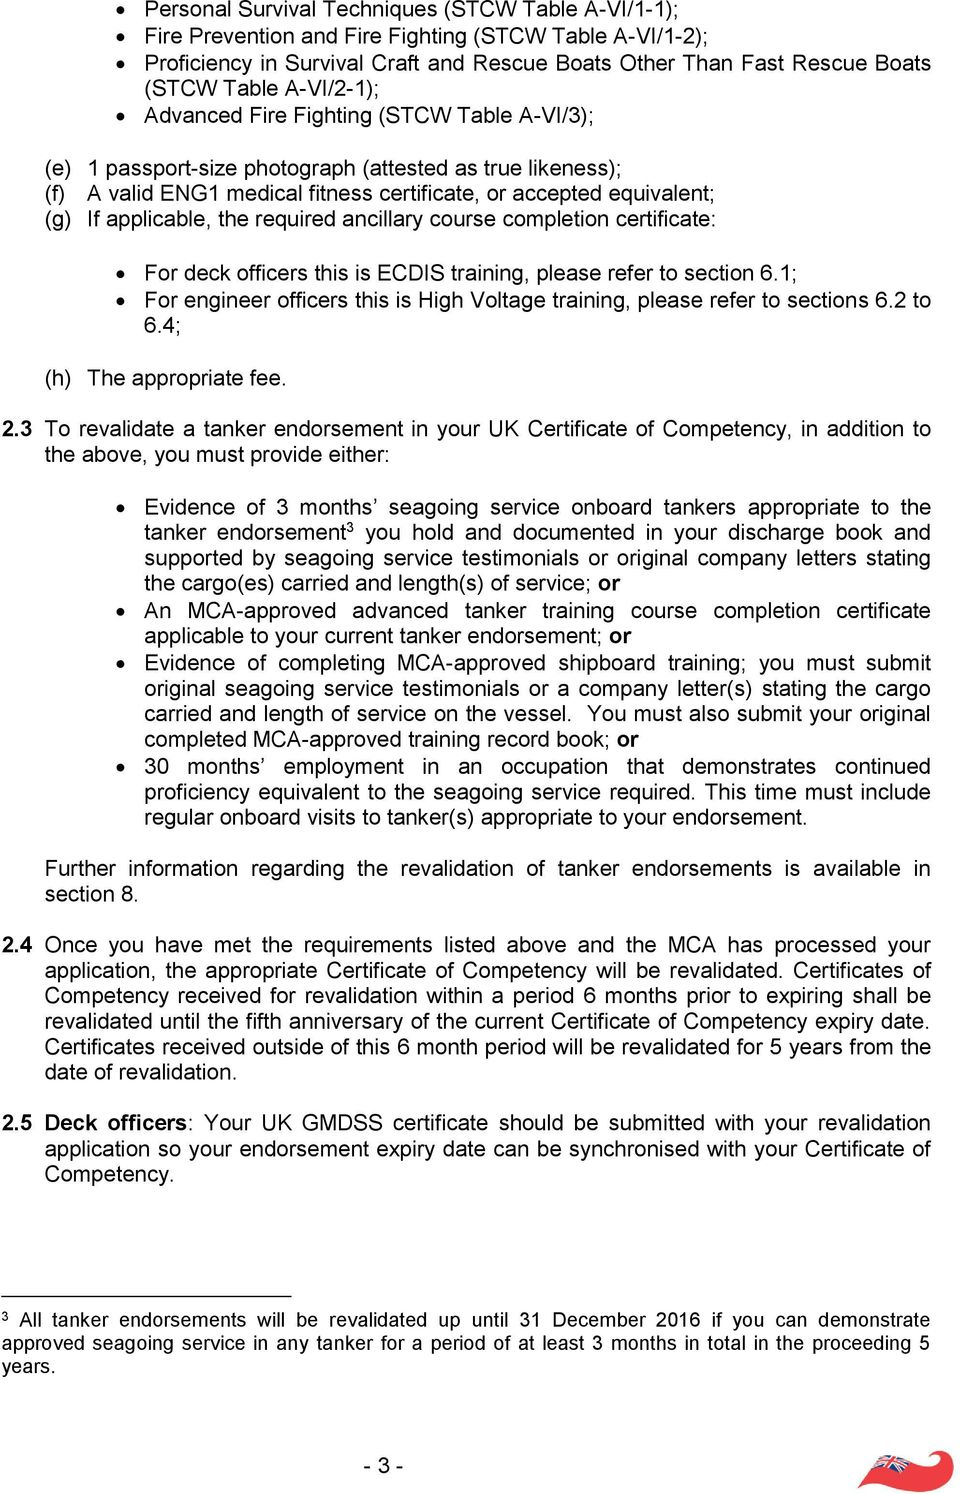 applicable, the required ancillary course completion certificate: For deck officers this is ECDIS training, please refer to section 6.